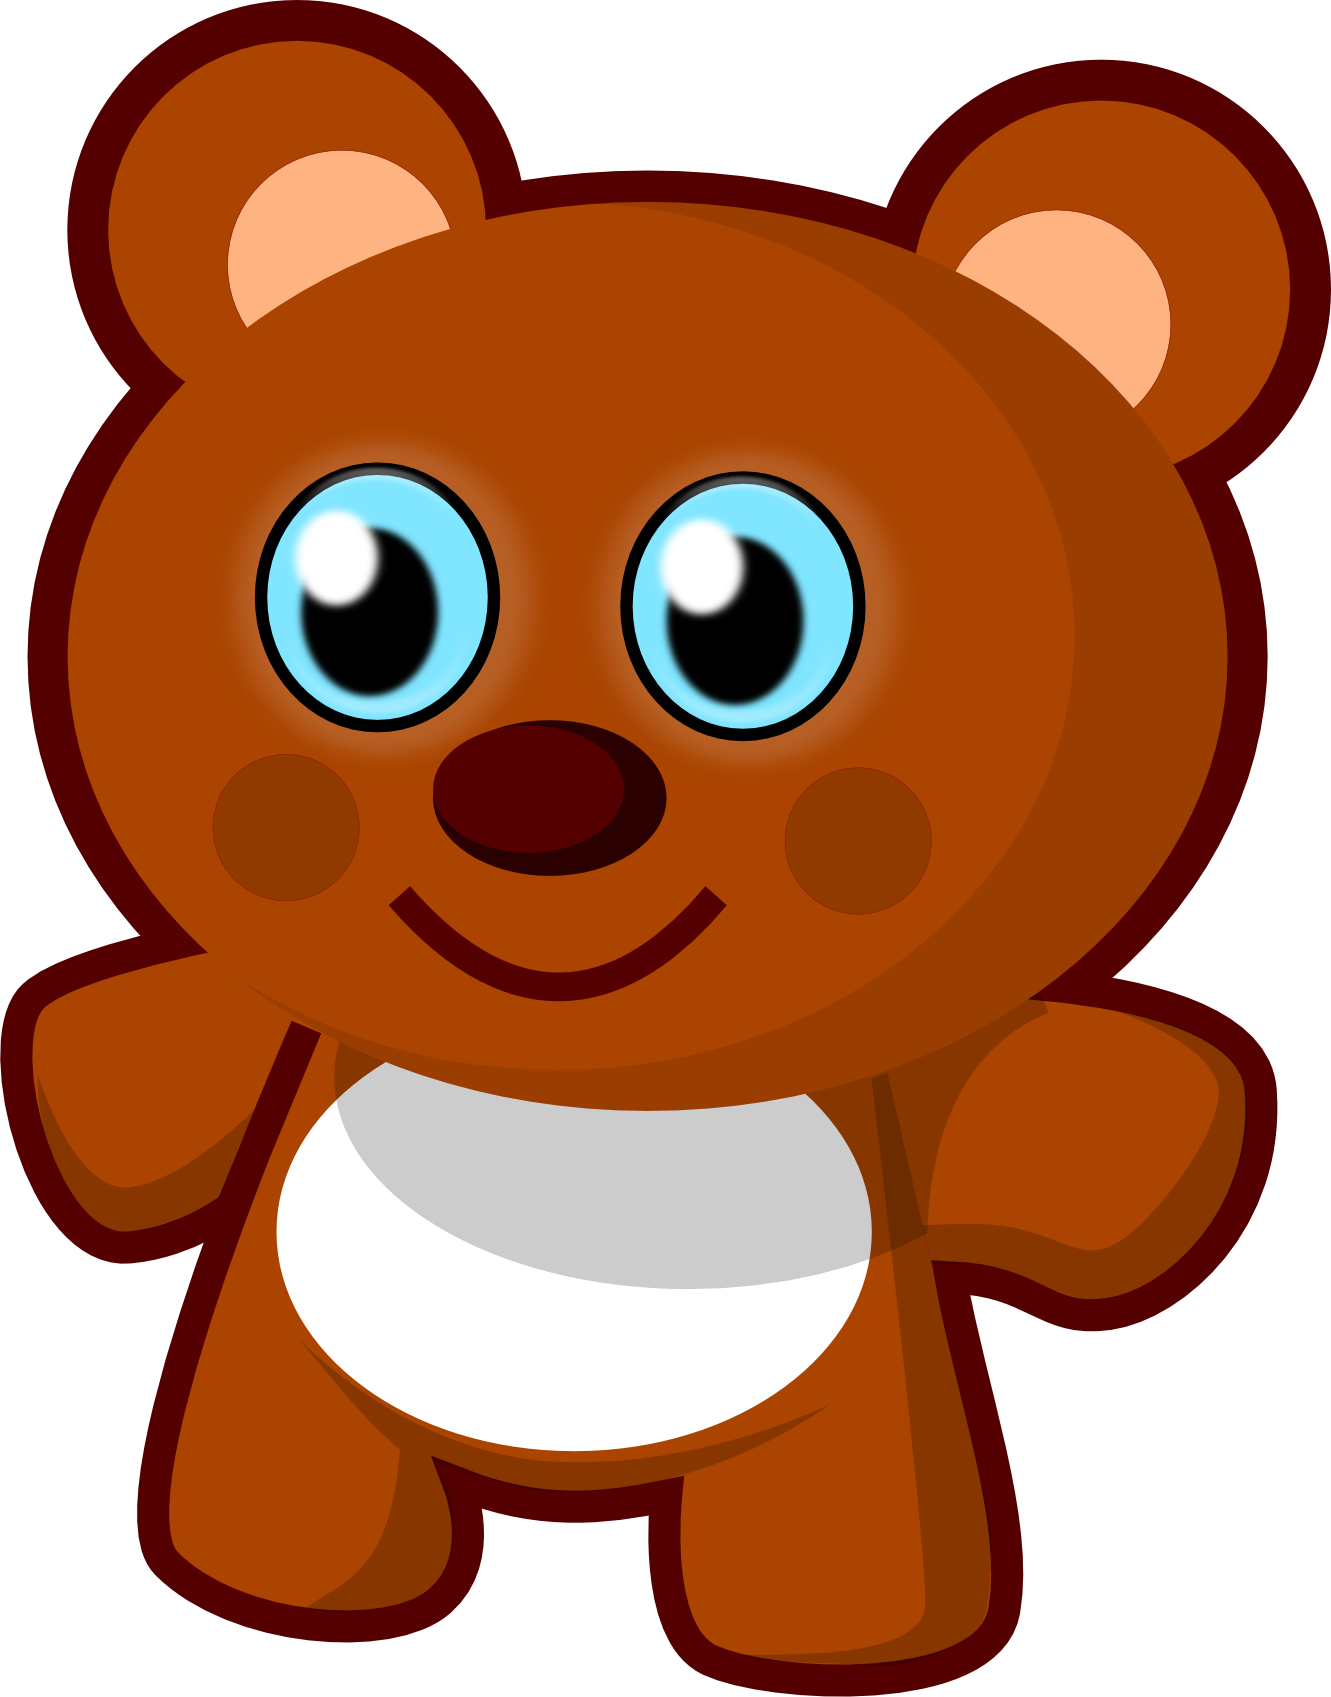 Preschool clipart bear. Clip art cute teddy